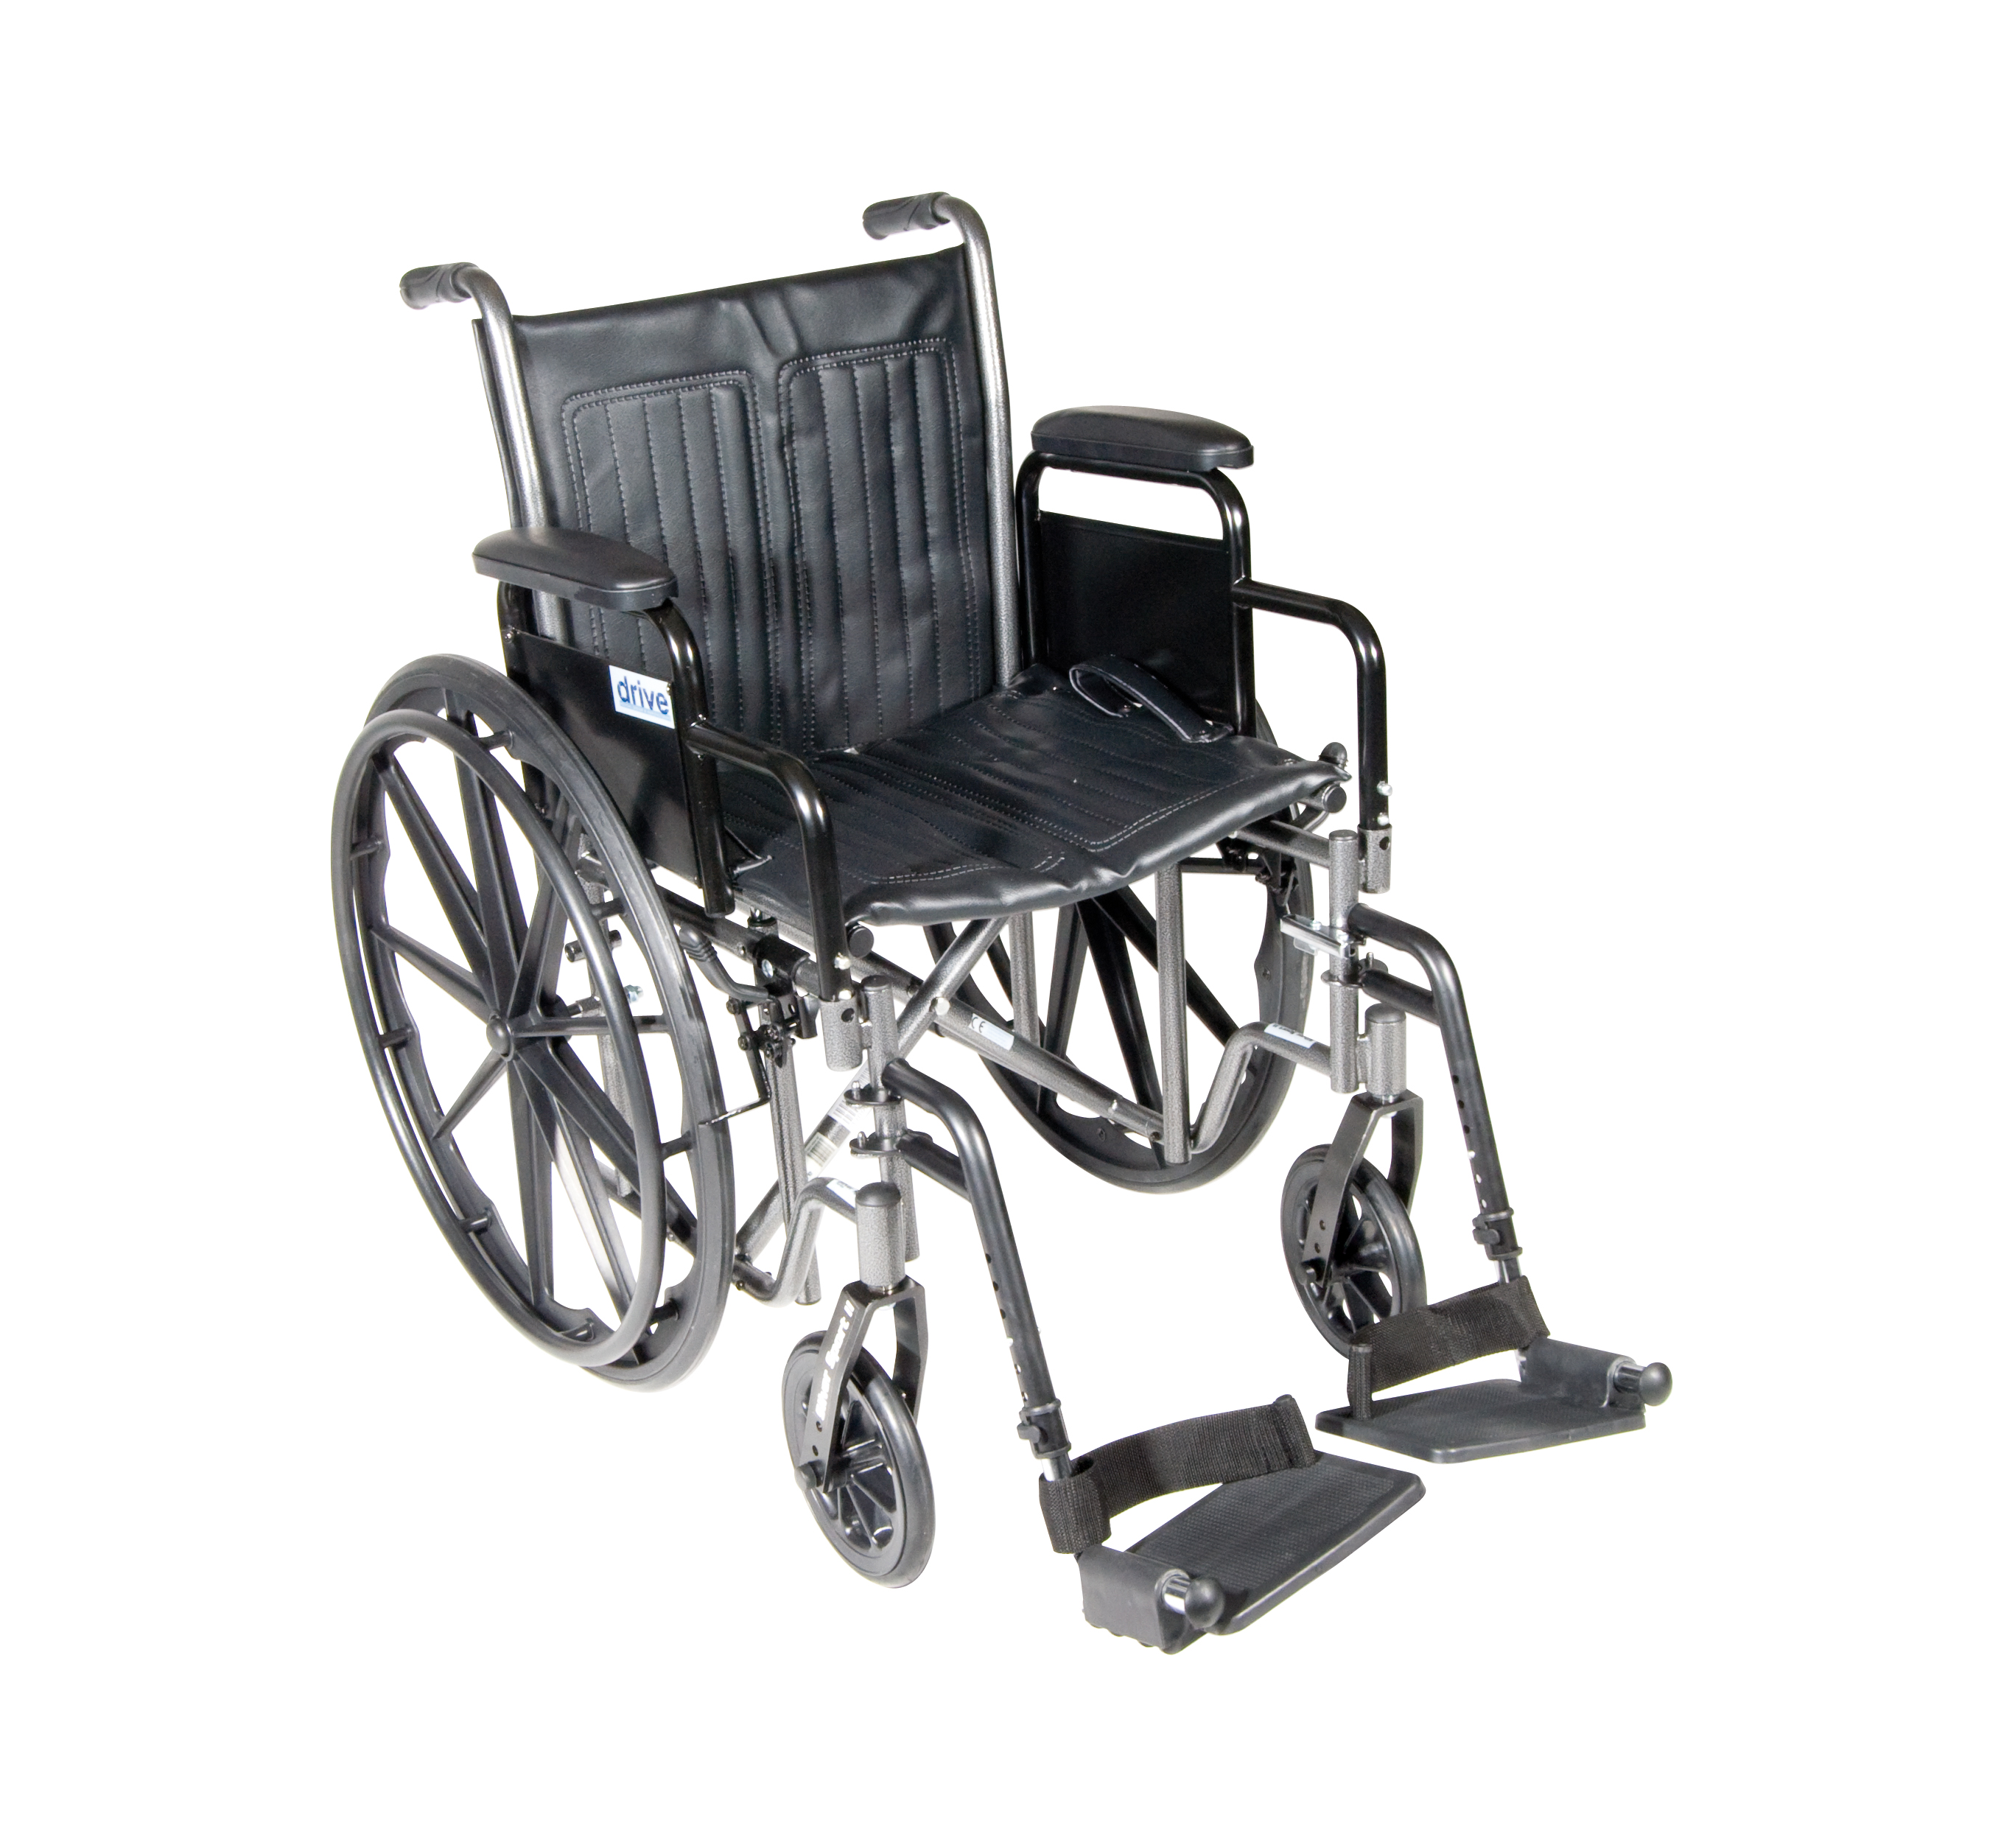 Drive Medical Silver Sport 2 Wheelchair, Detachable Desk Arms, Swing away Footrests